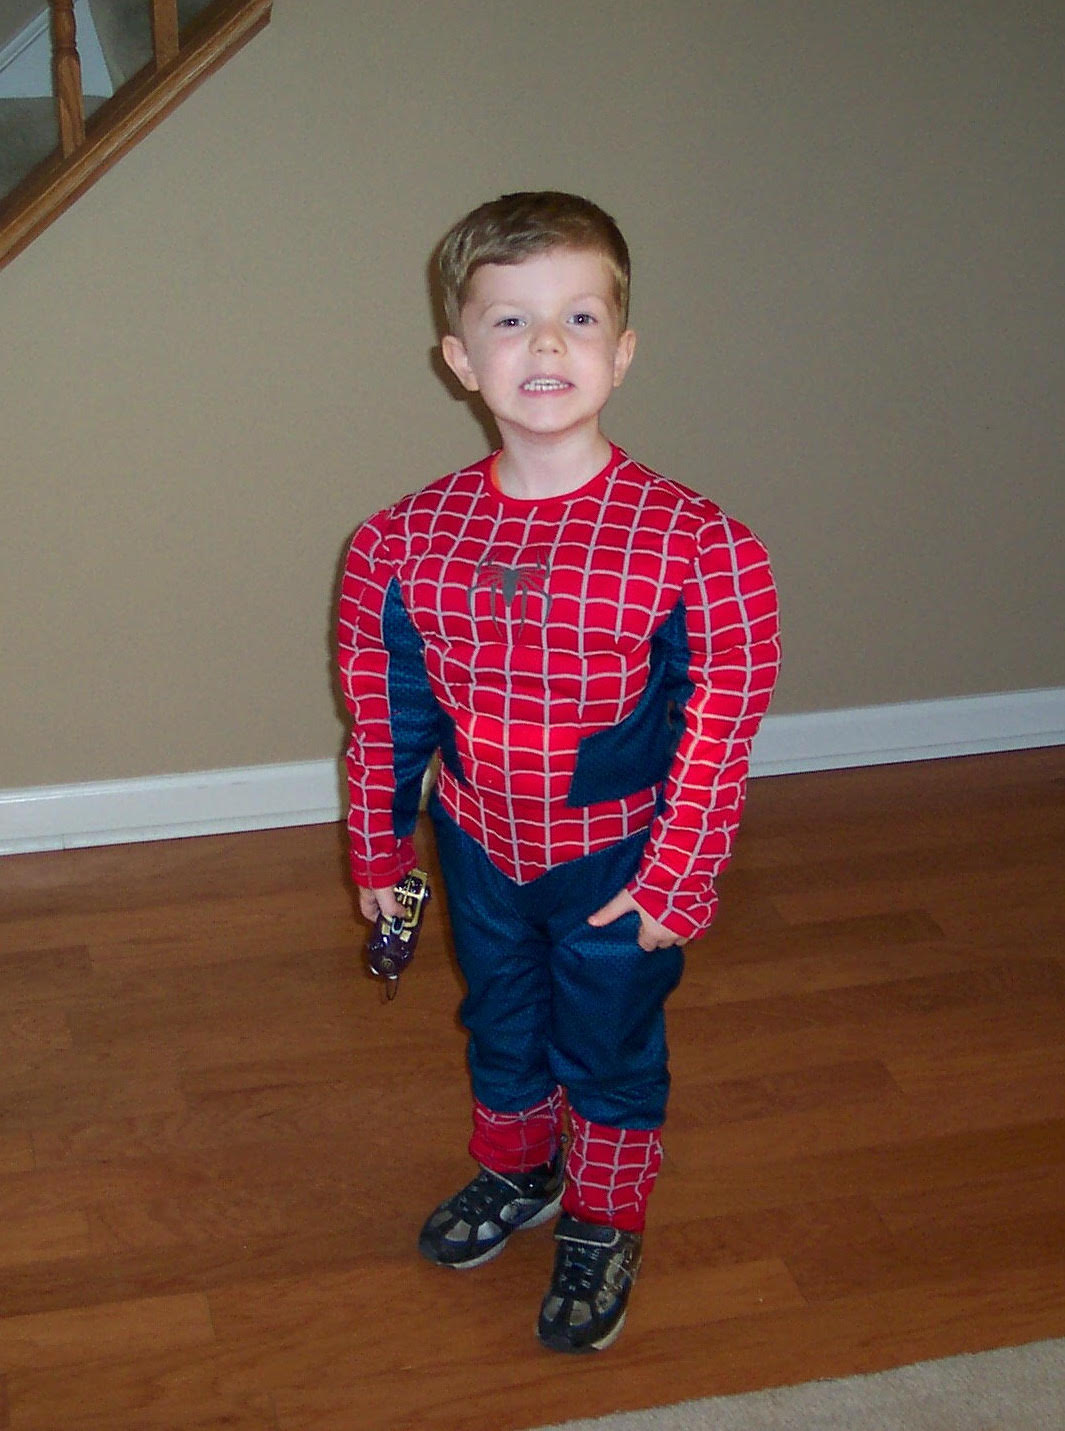 JoJo as Spiderman copy